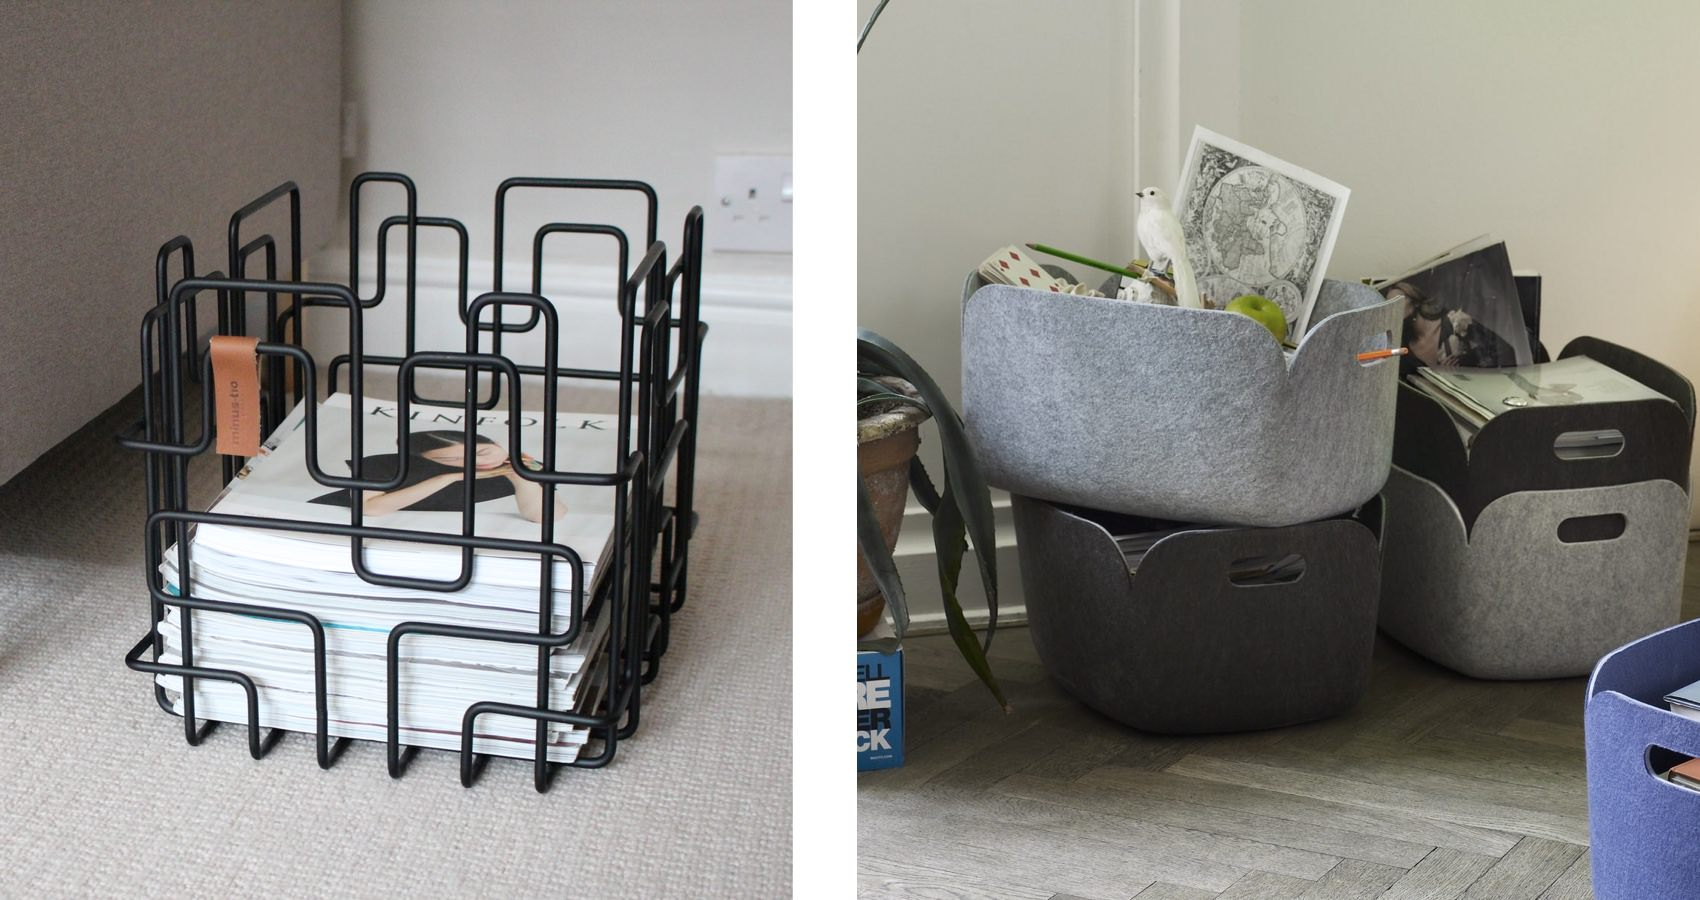 Minus Tio Block Basket and Muuto Restore Basket